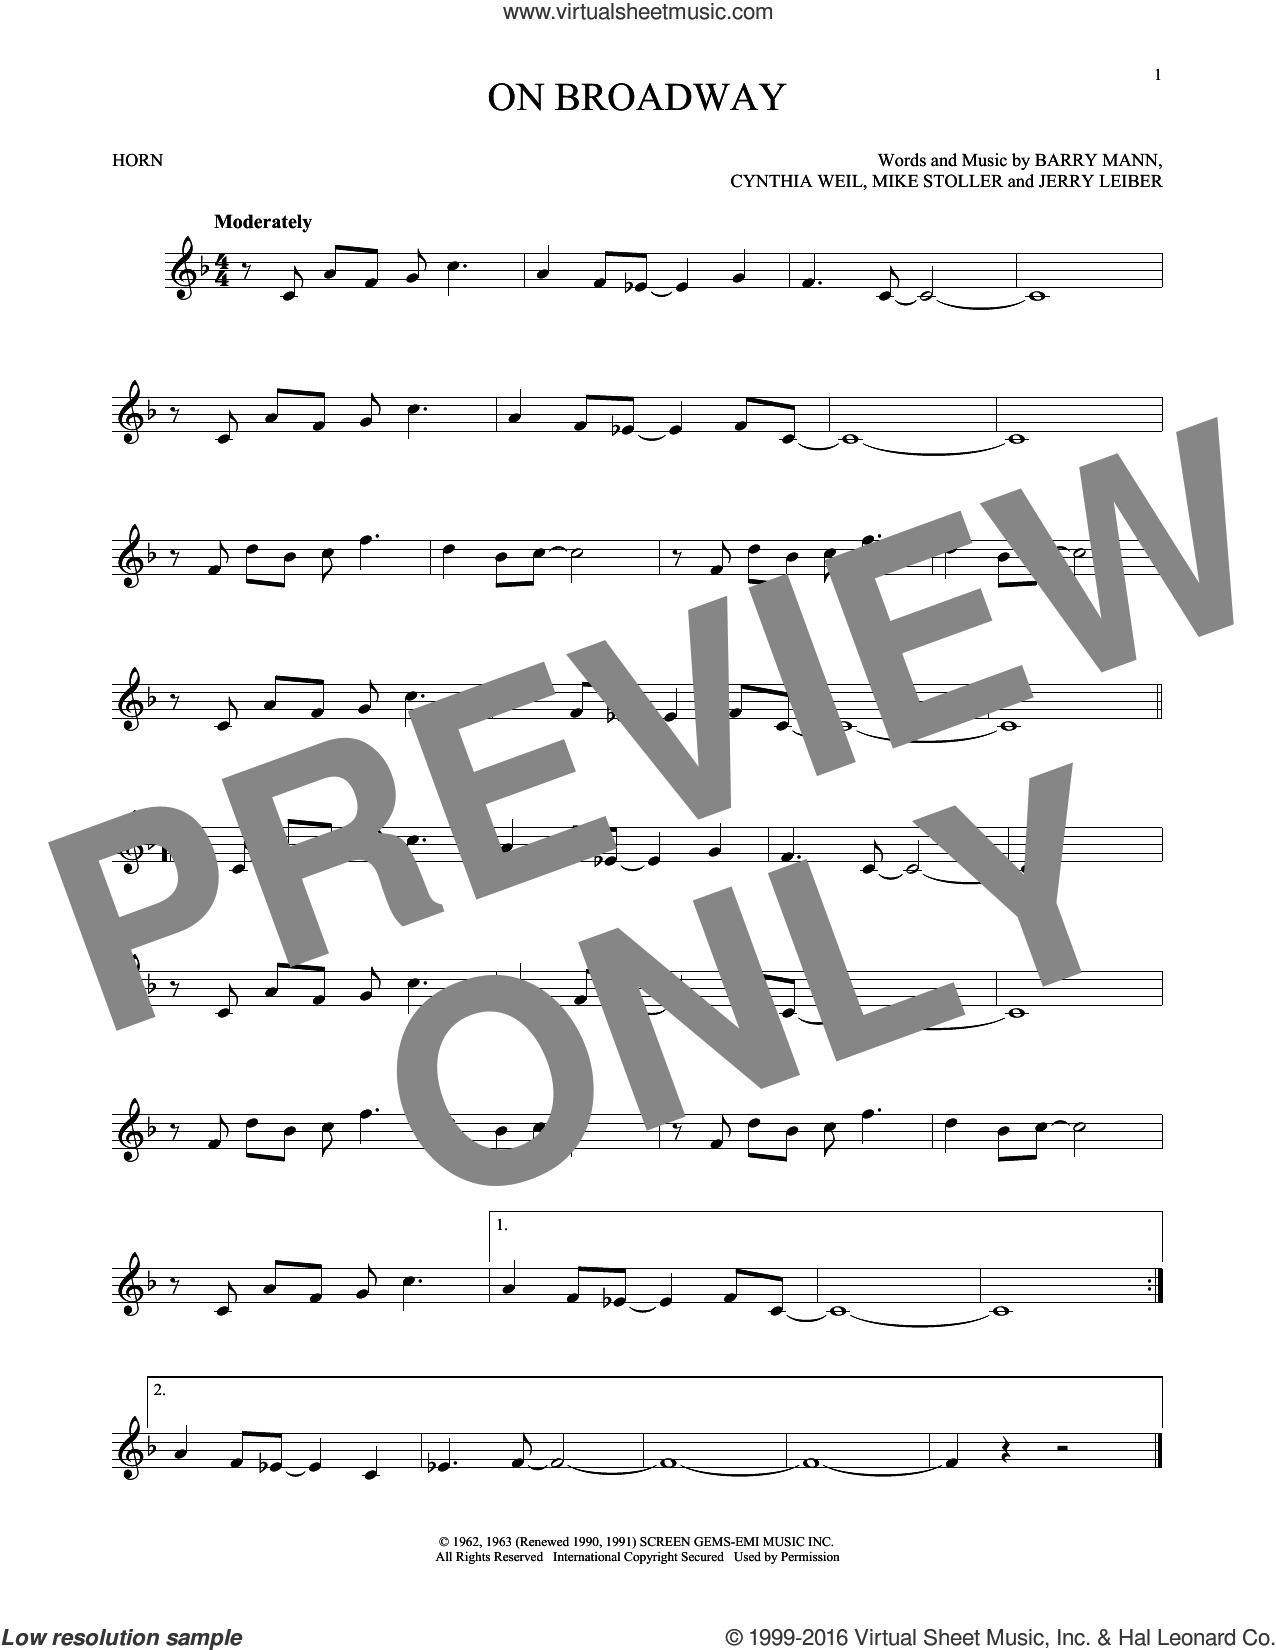 On Broadway sheet music for horn solo by George Benson, The Drifters, Barry Mann, Cynthia Weil, Jerry Leiber and Mike Stoller, intermediate skill level